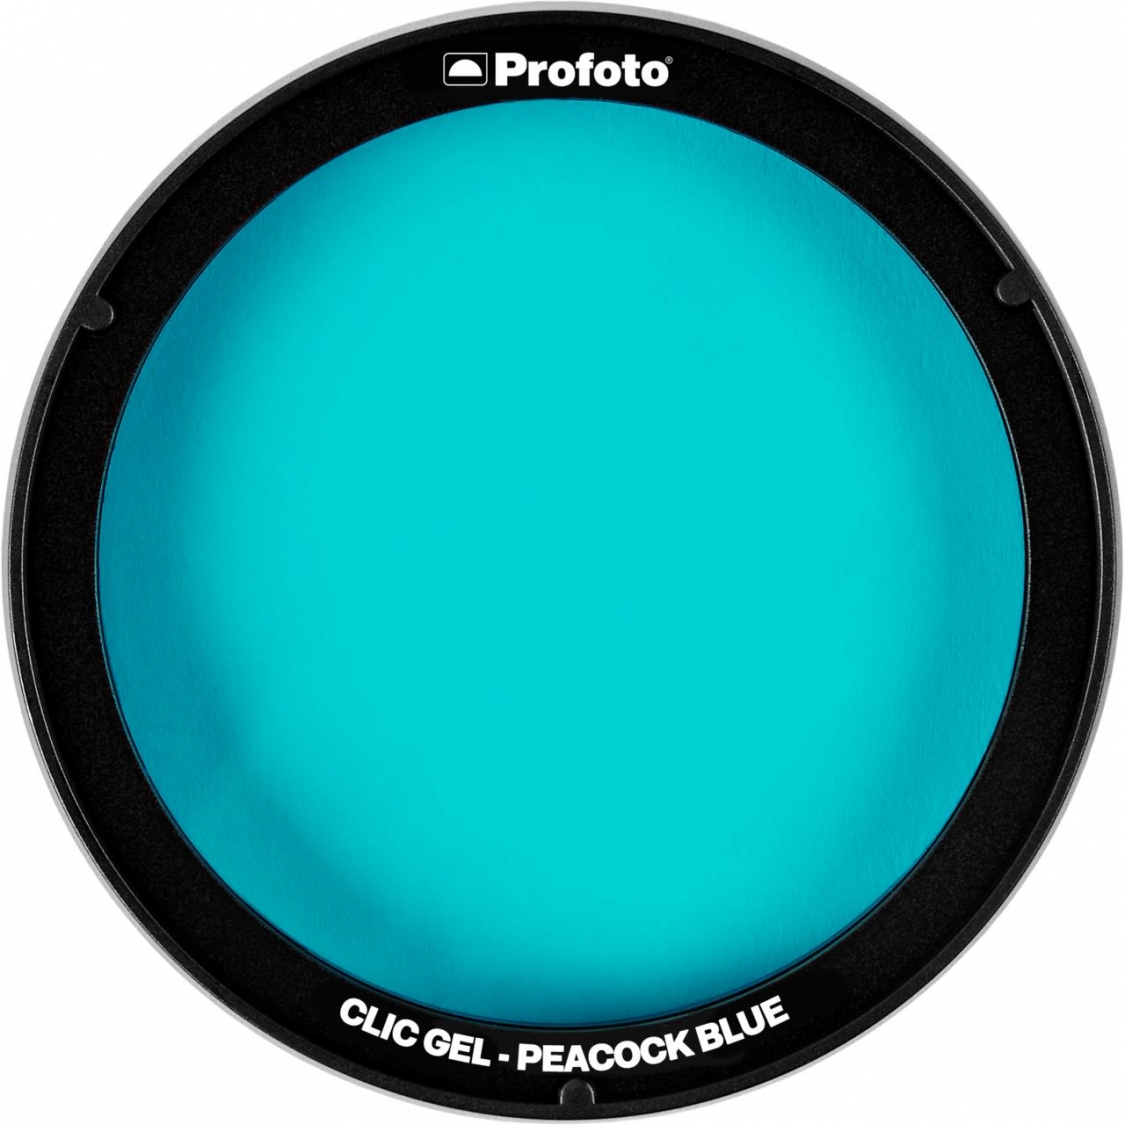 Profoto C1 Clic Gel Peacock Blue